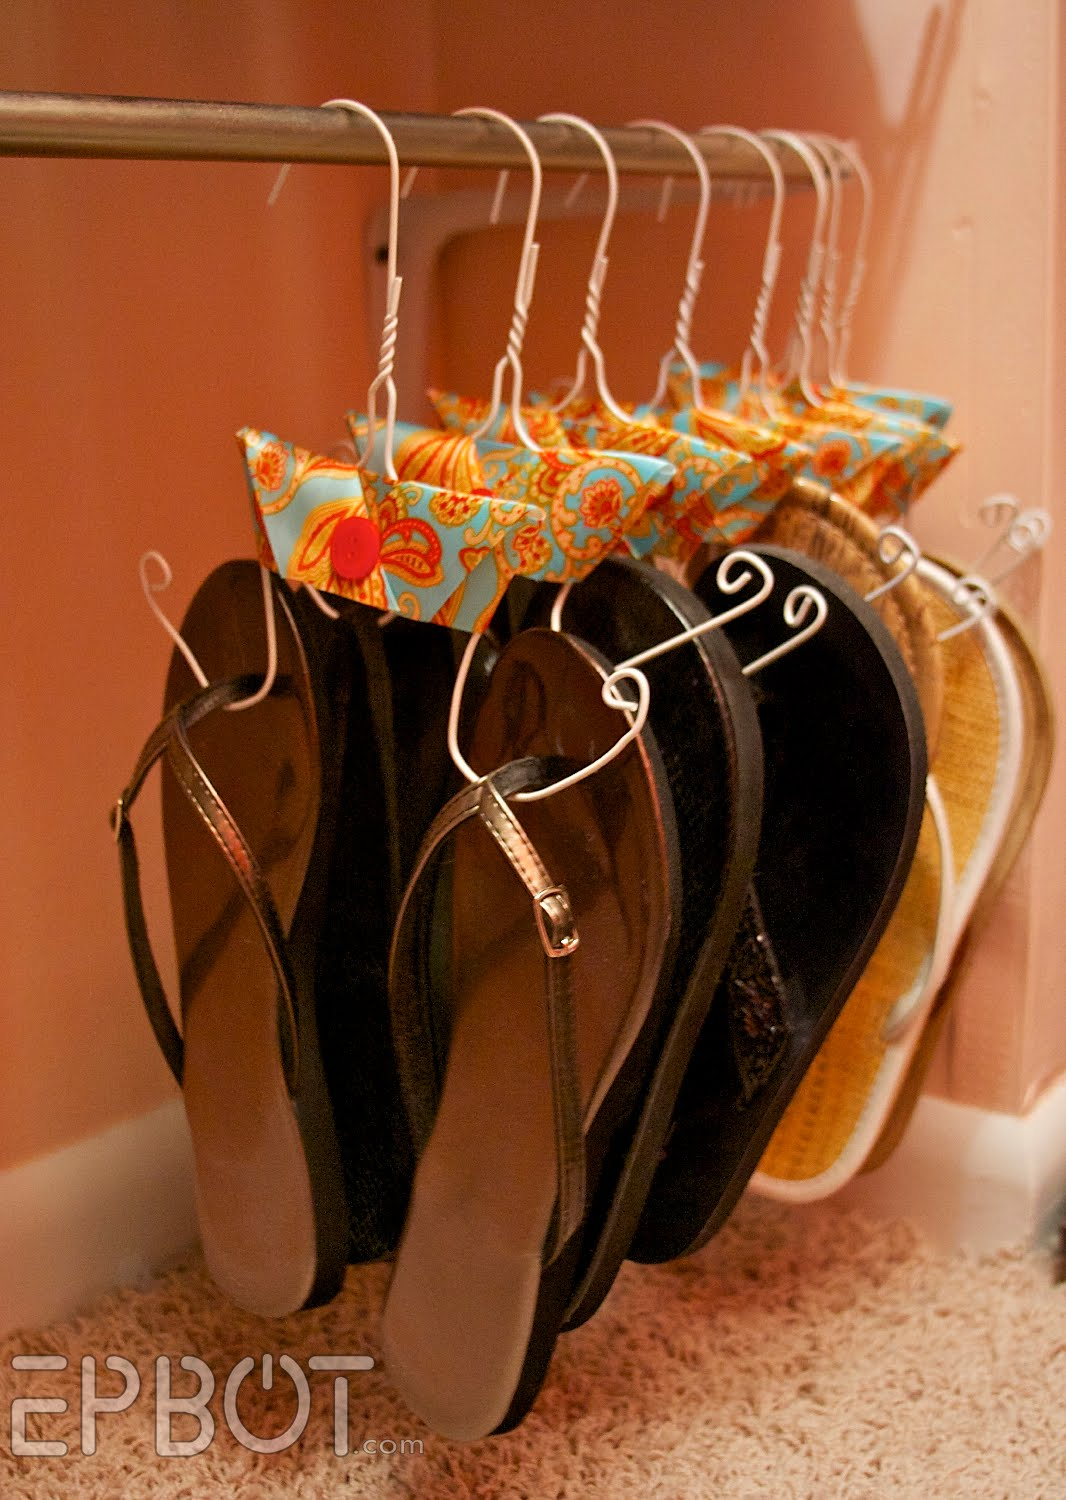 Dollar Store Crafts » Blog Archive » Make Flip-Flop Hangers